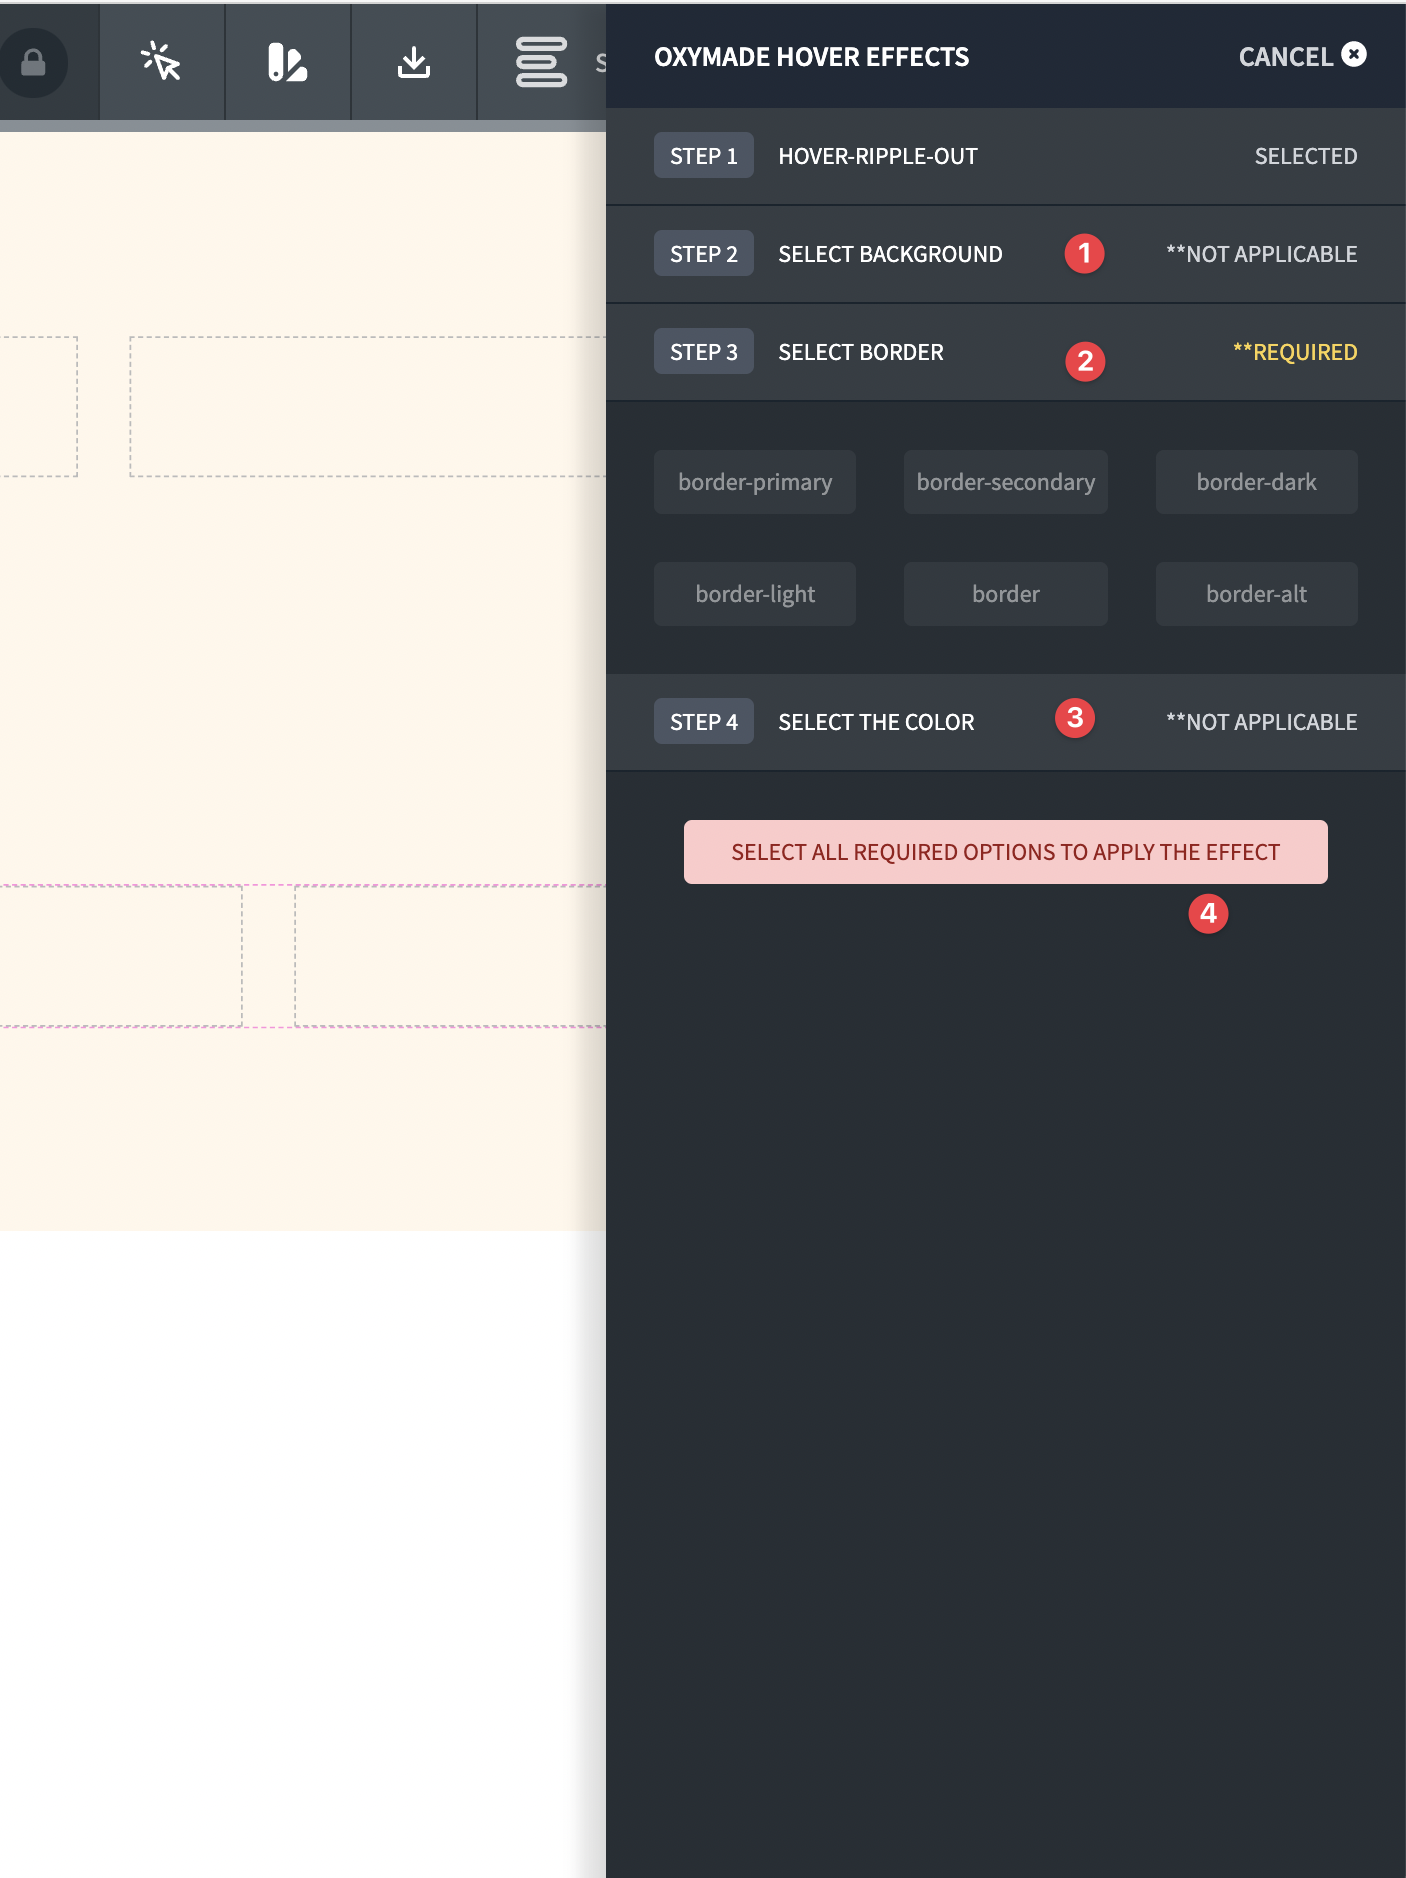 Hover effects selection